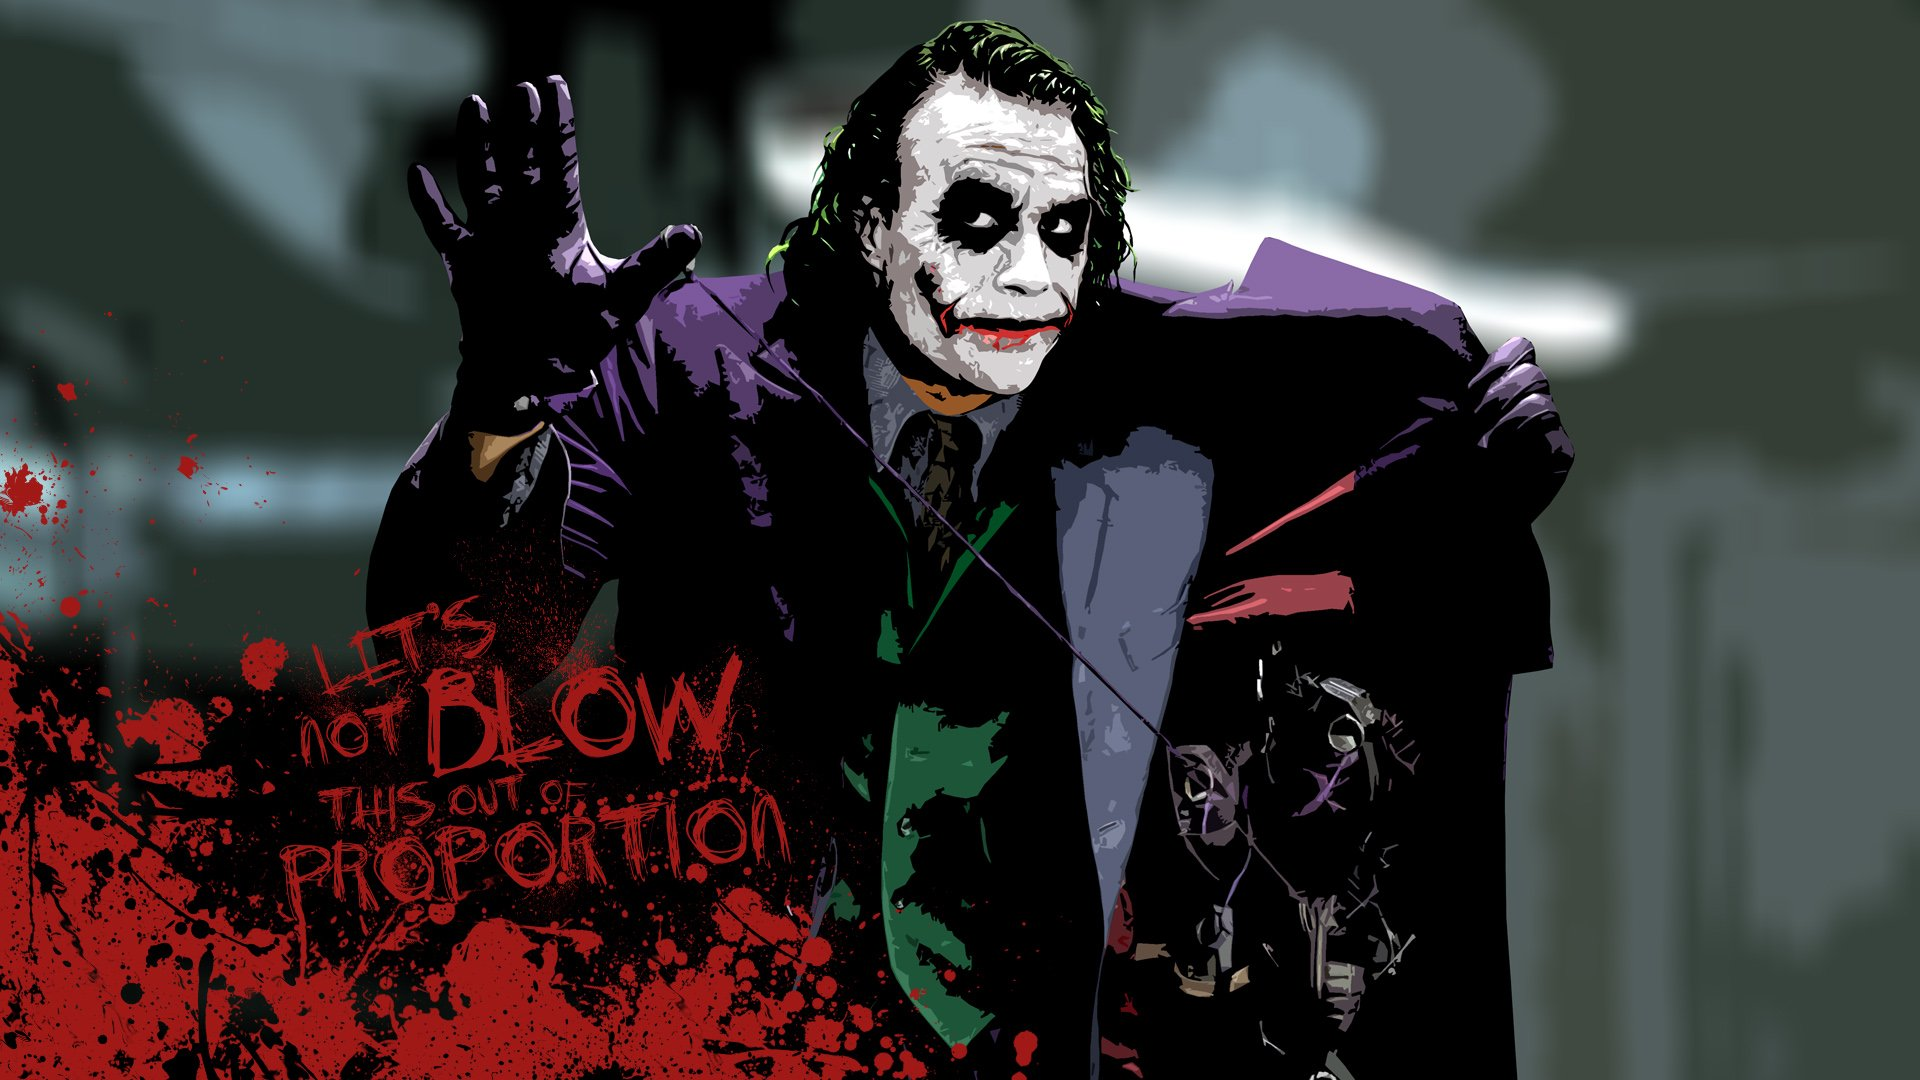 joker   The Joker Wallpaper 28092794   Page 4 1920x1080